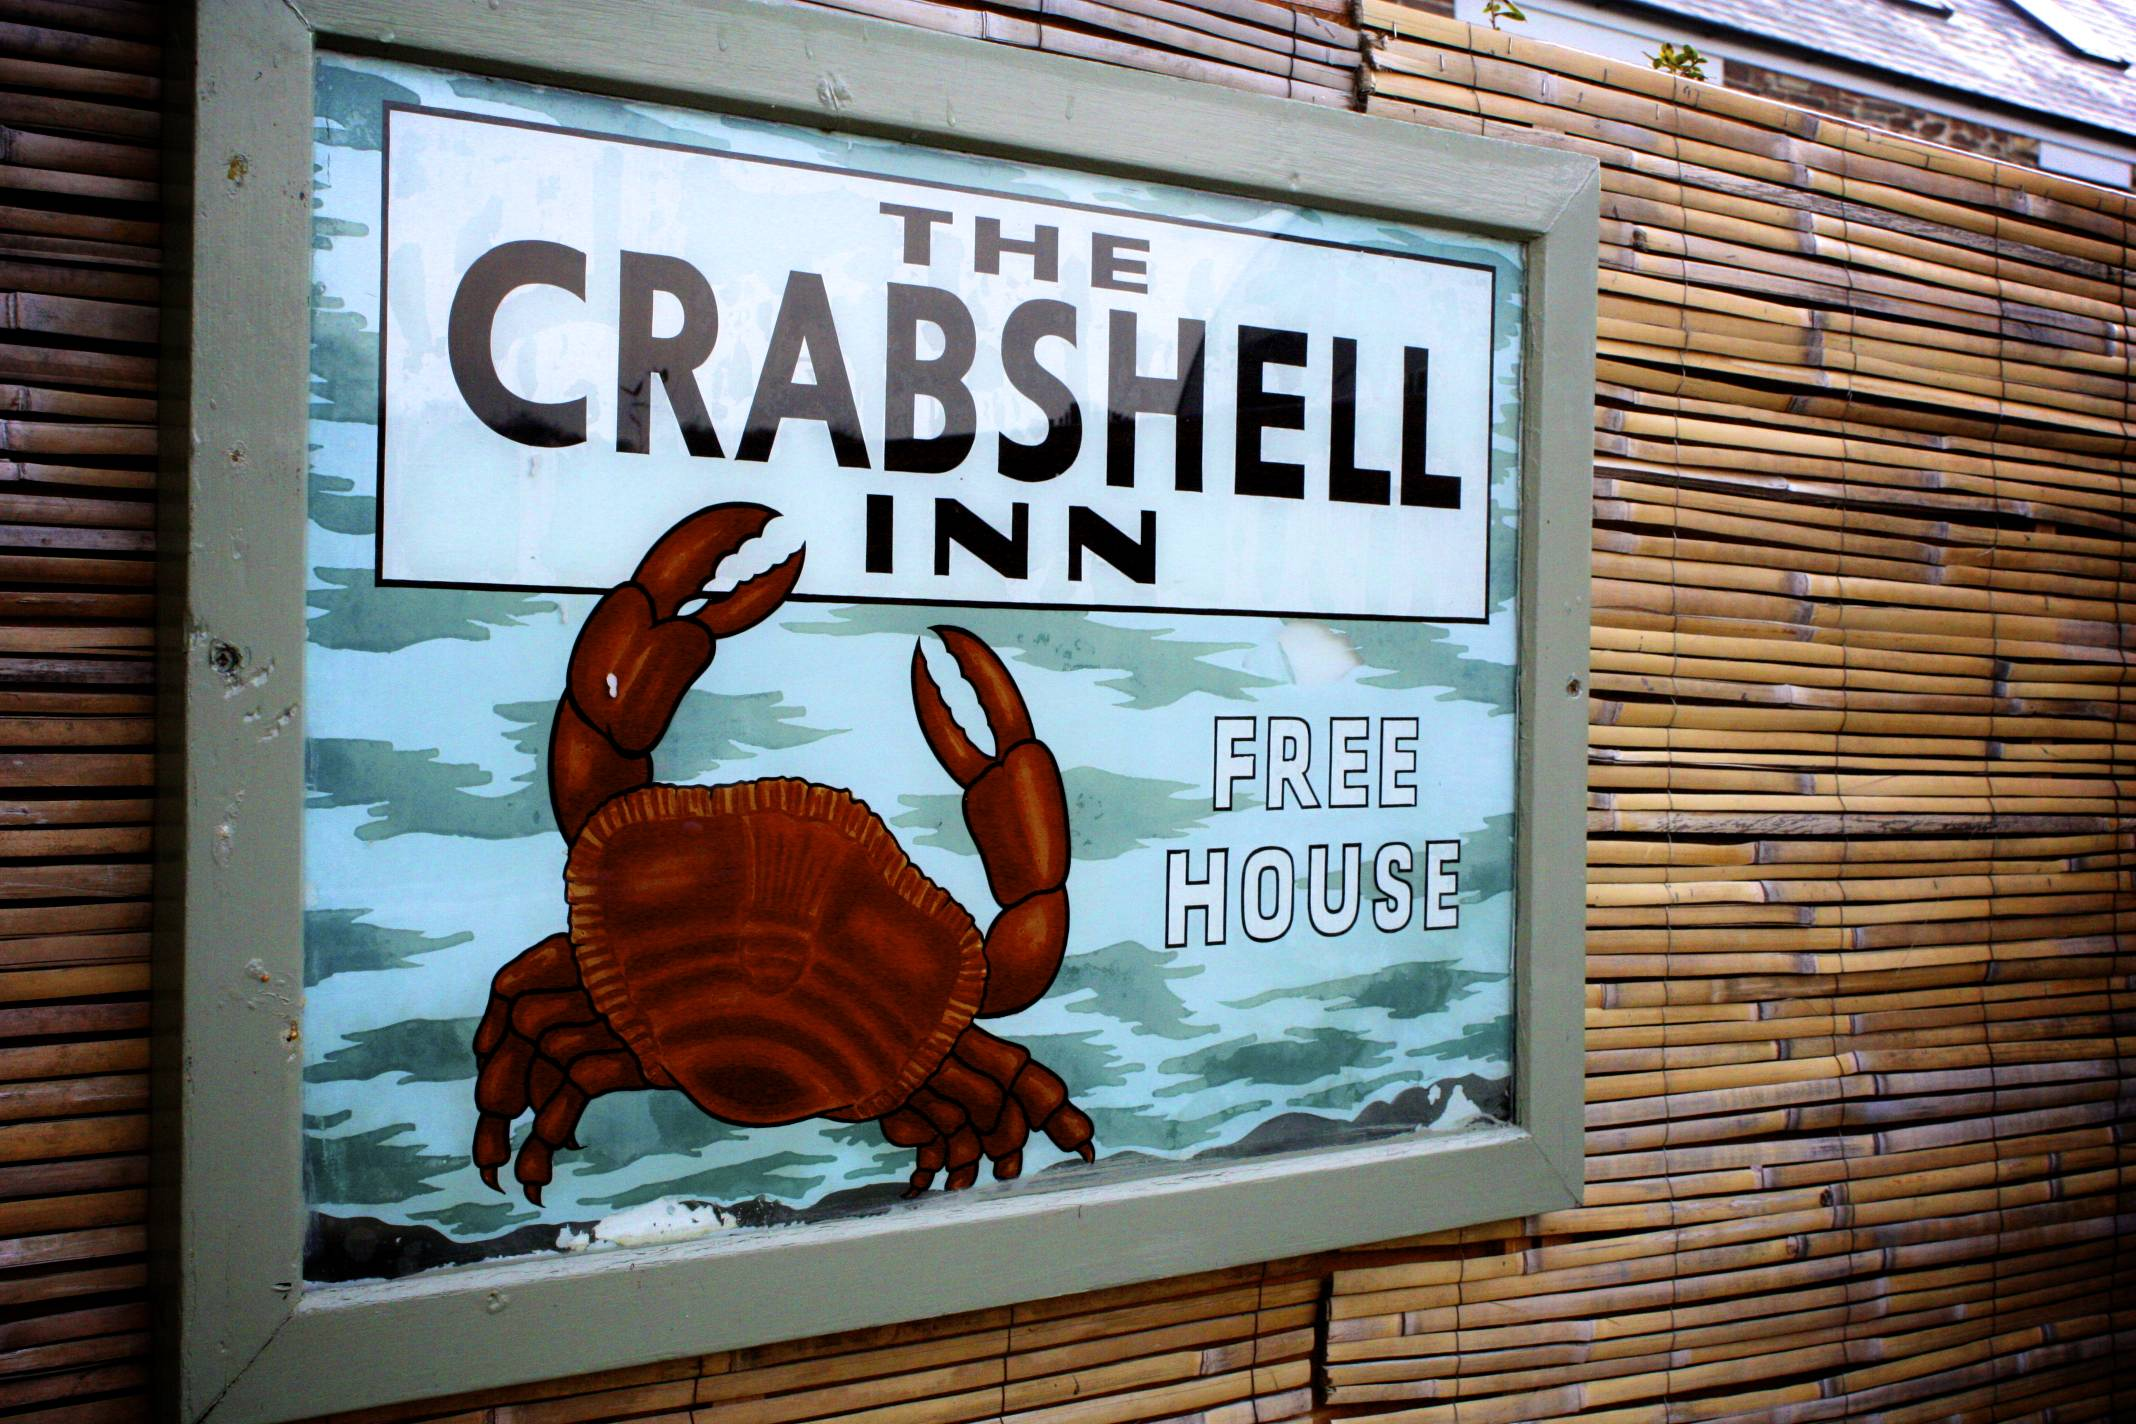 The Crabshell Inn - Kingsbridge